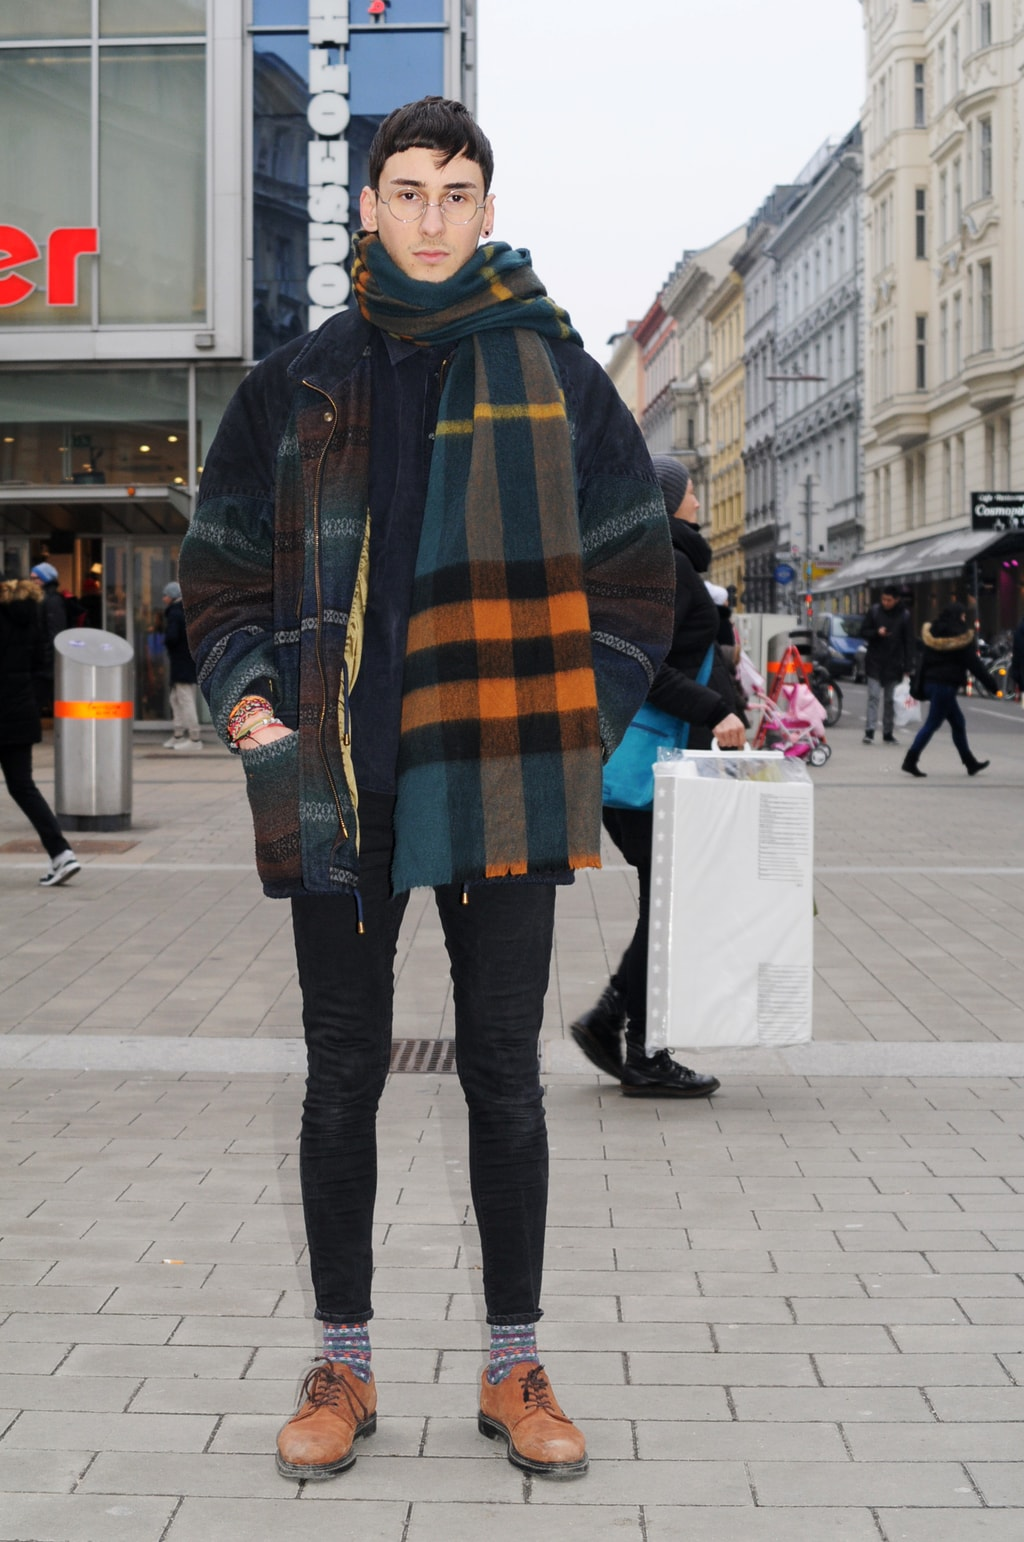 Mens fashion at the University of Vienna in Austria: Plaid coat, plaid scarf, black skinny jeans, oxfords, patterned socks